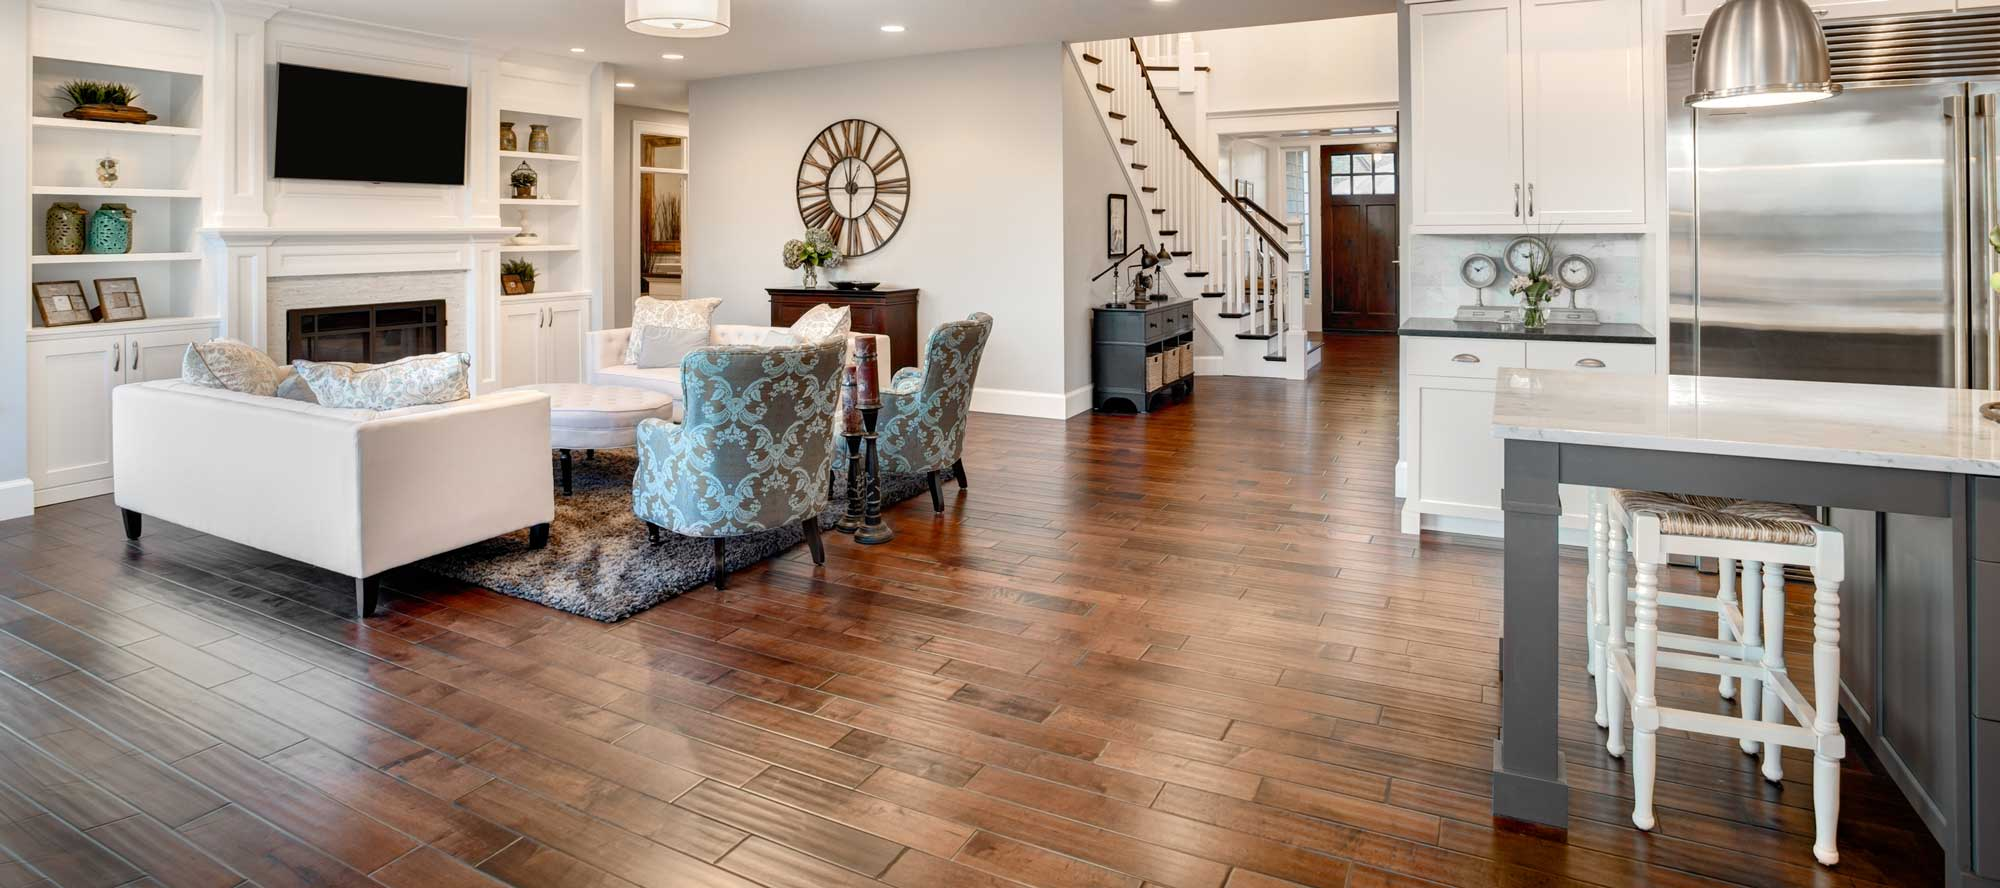 Hardwood floor flowing through kitchen into a family room